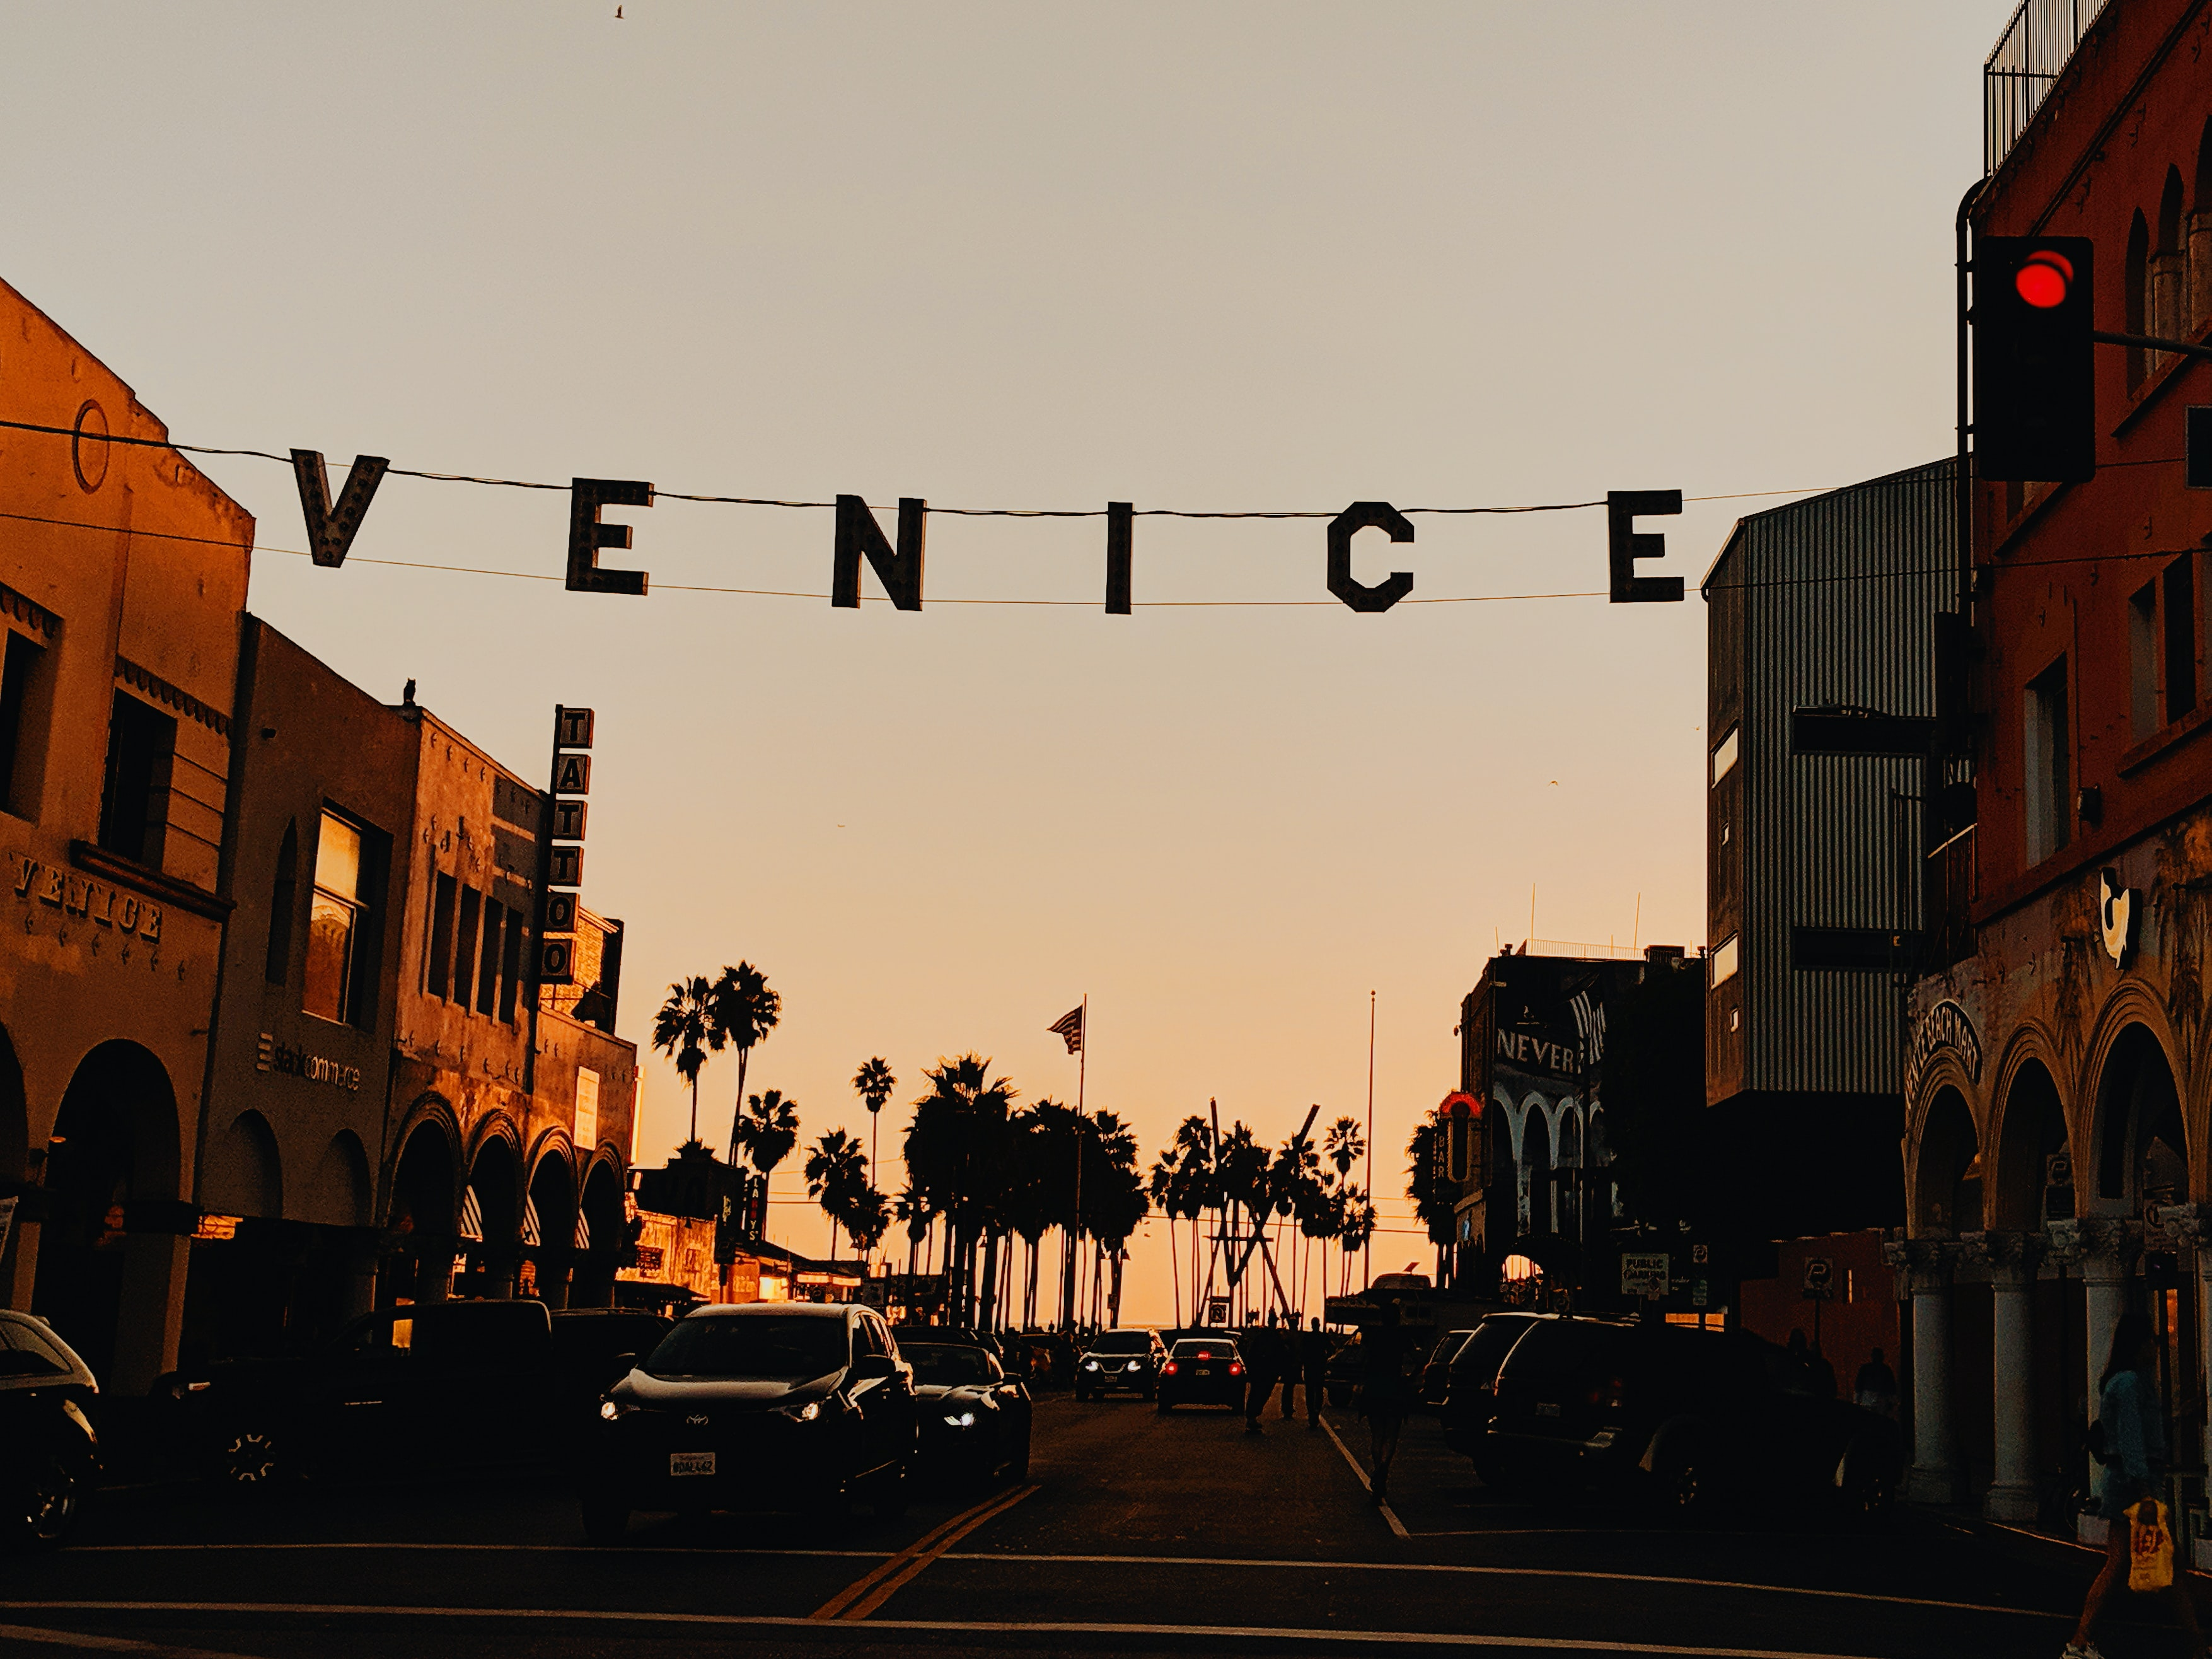 Venice City during daytime